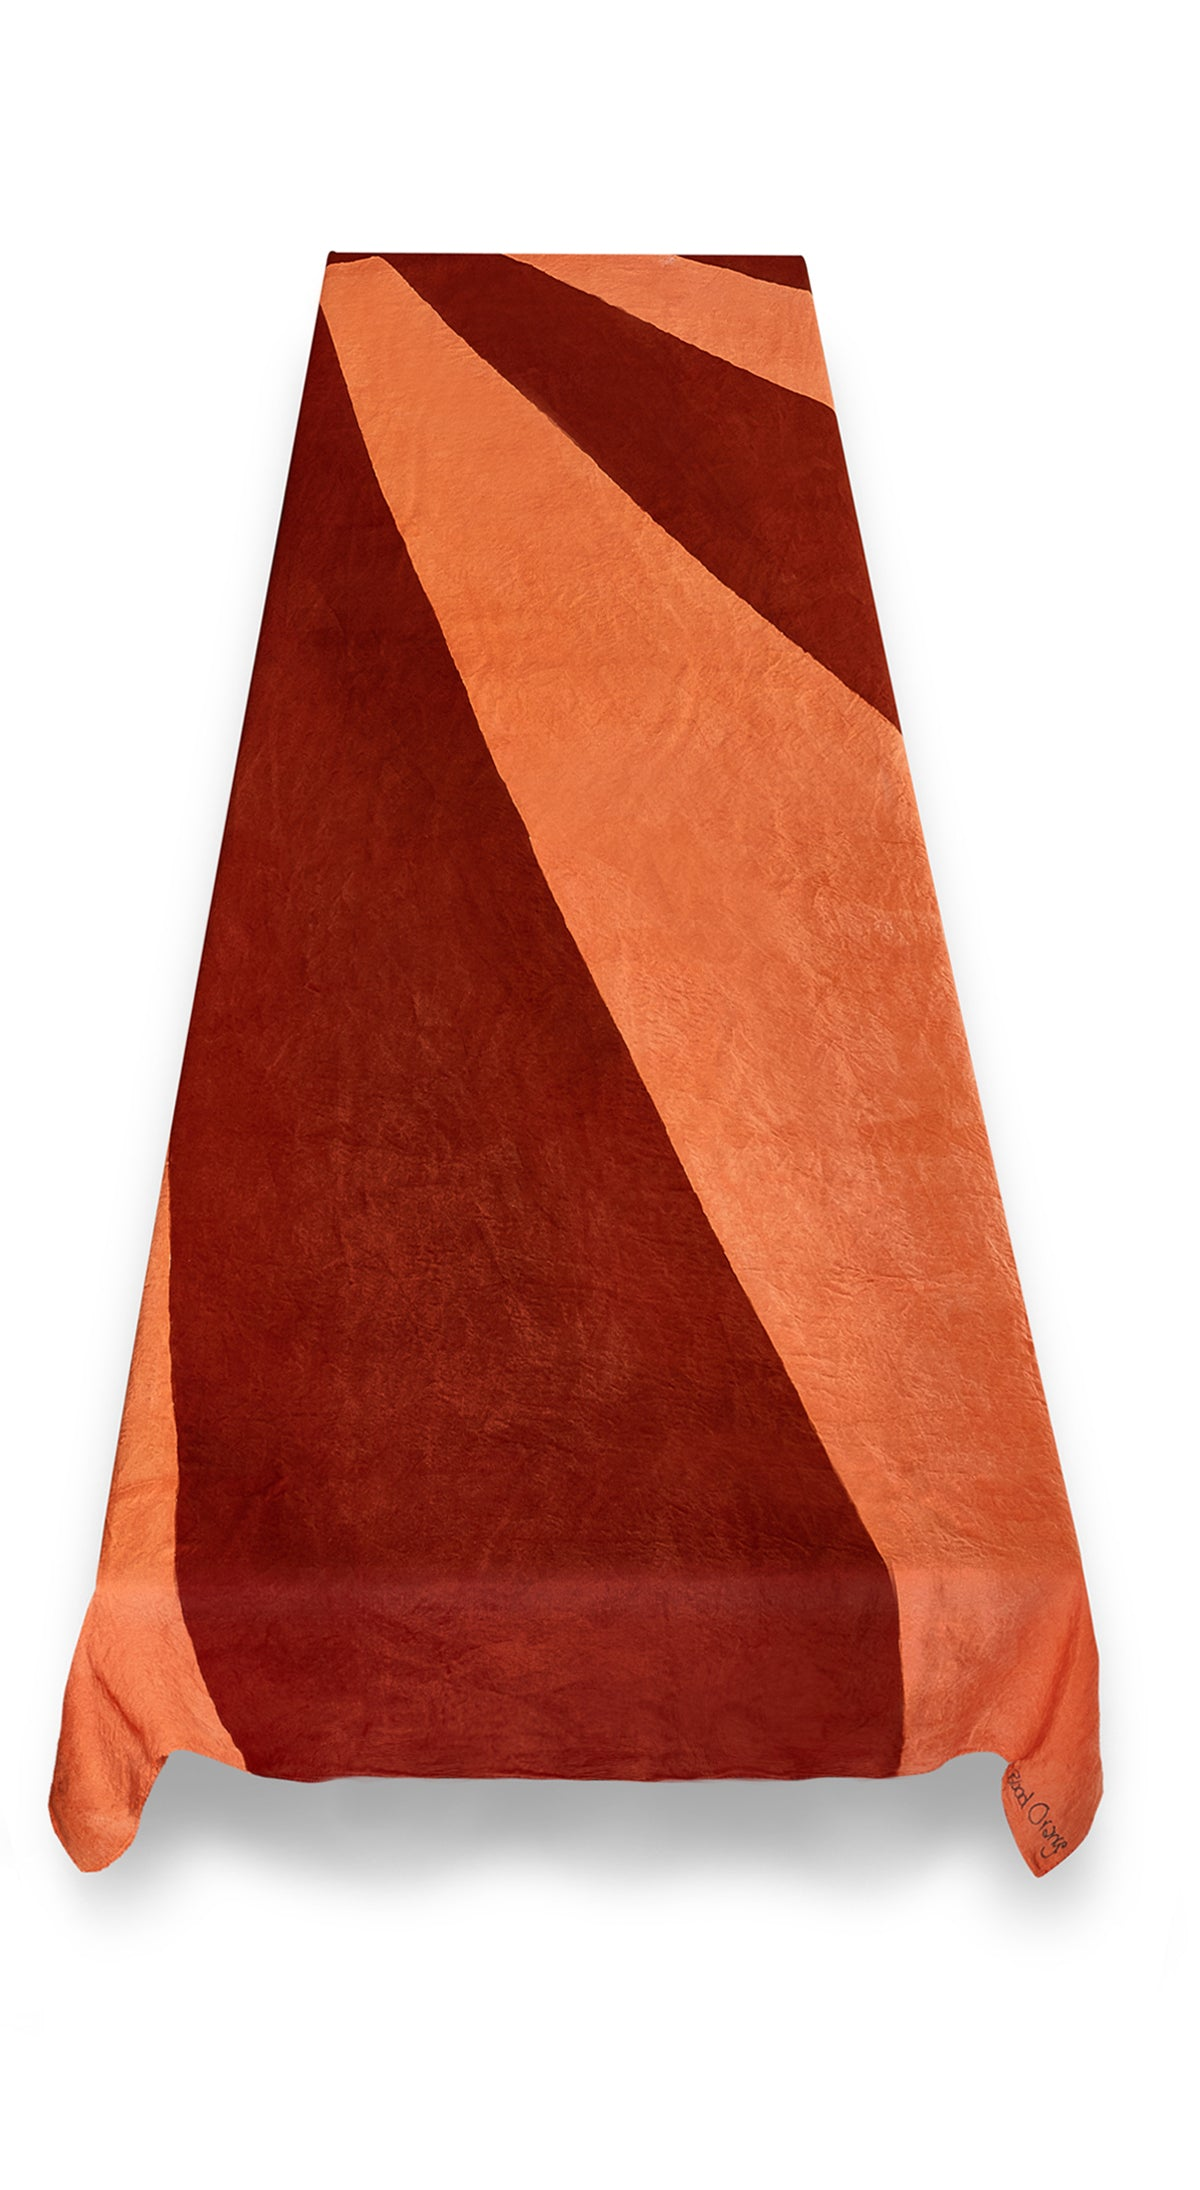 """Blood Orange"" S&B x Skye Gyngell Linen Tablecloth"